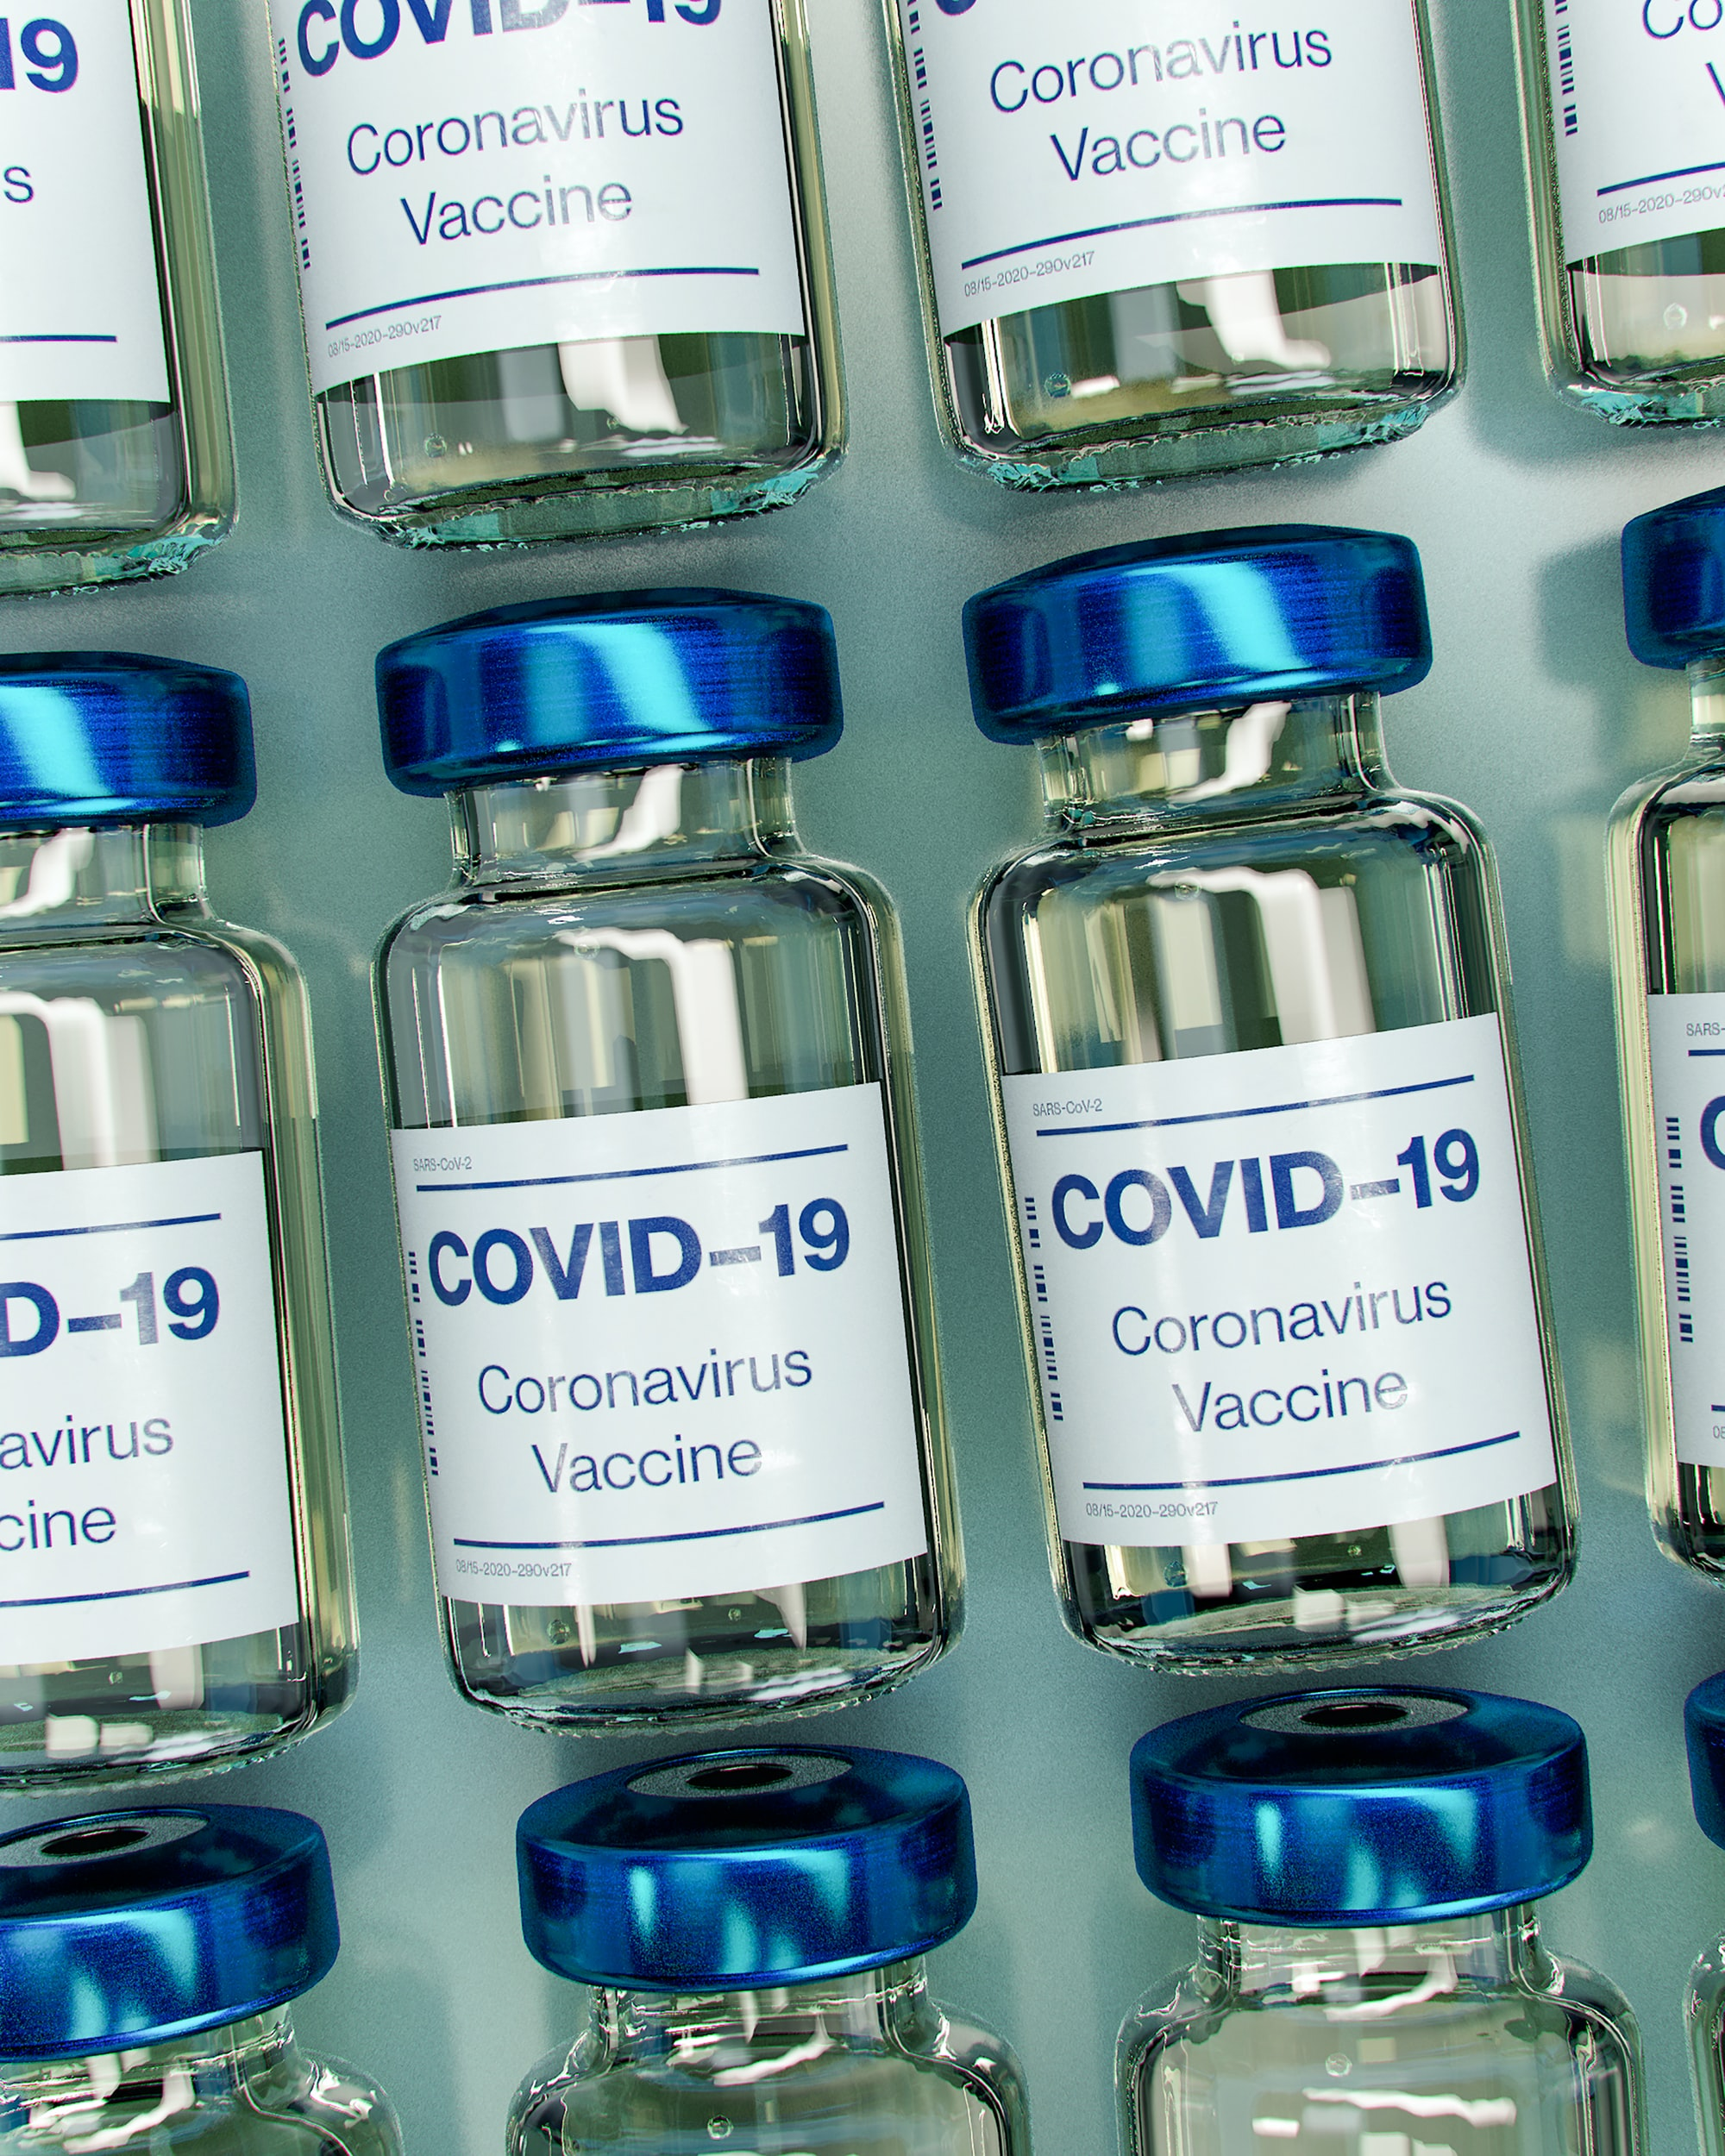 One million COVID-19 vaccine shots by February